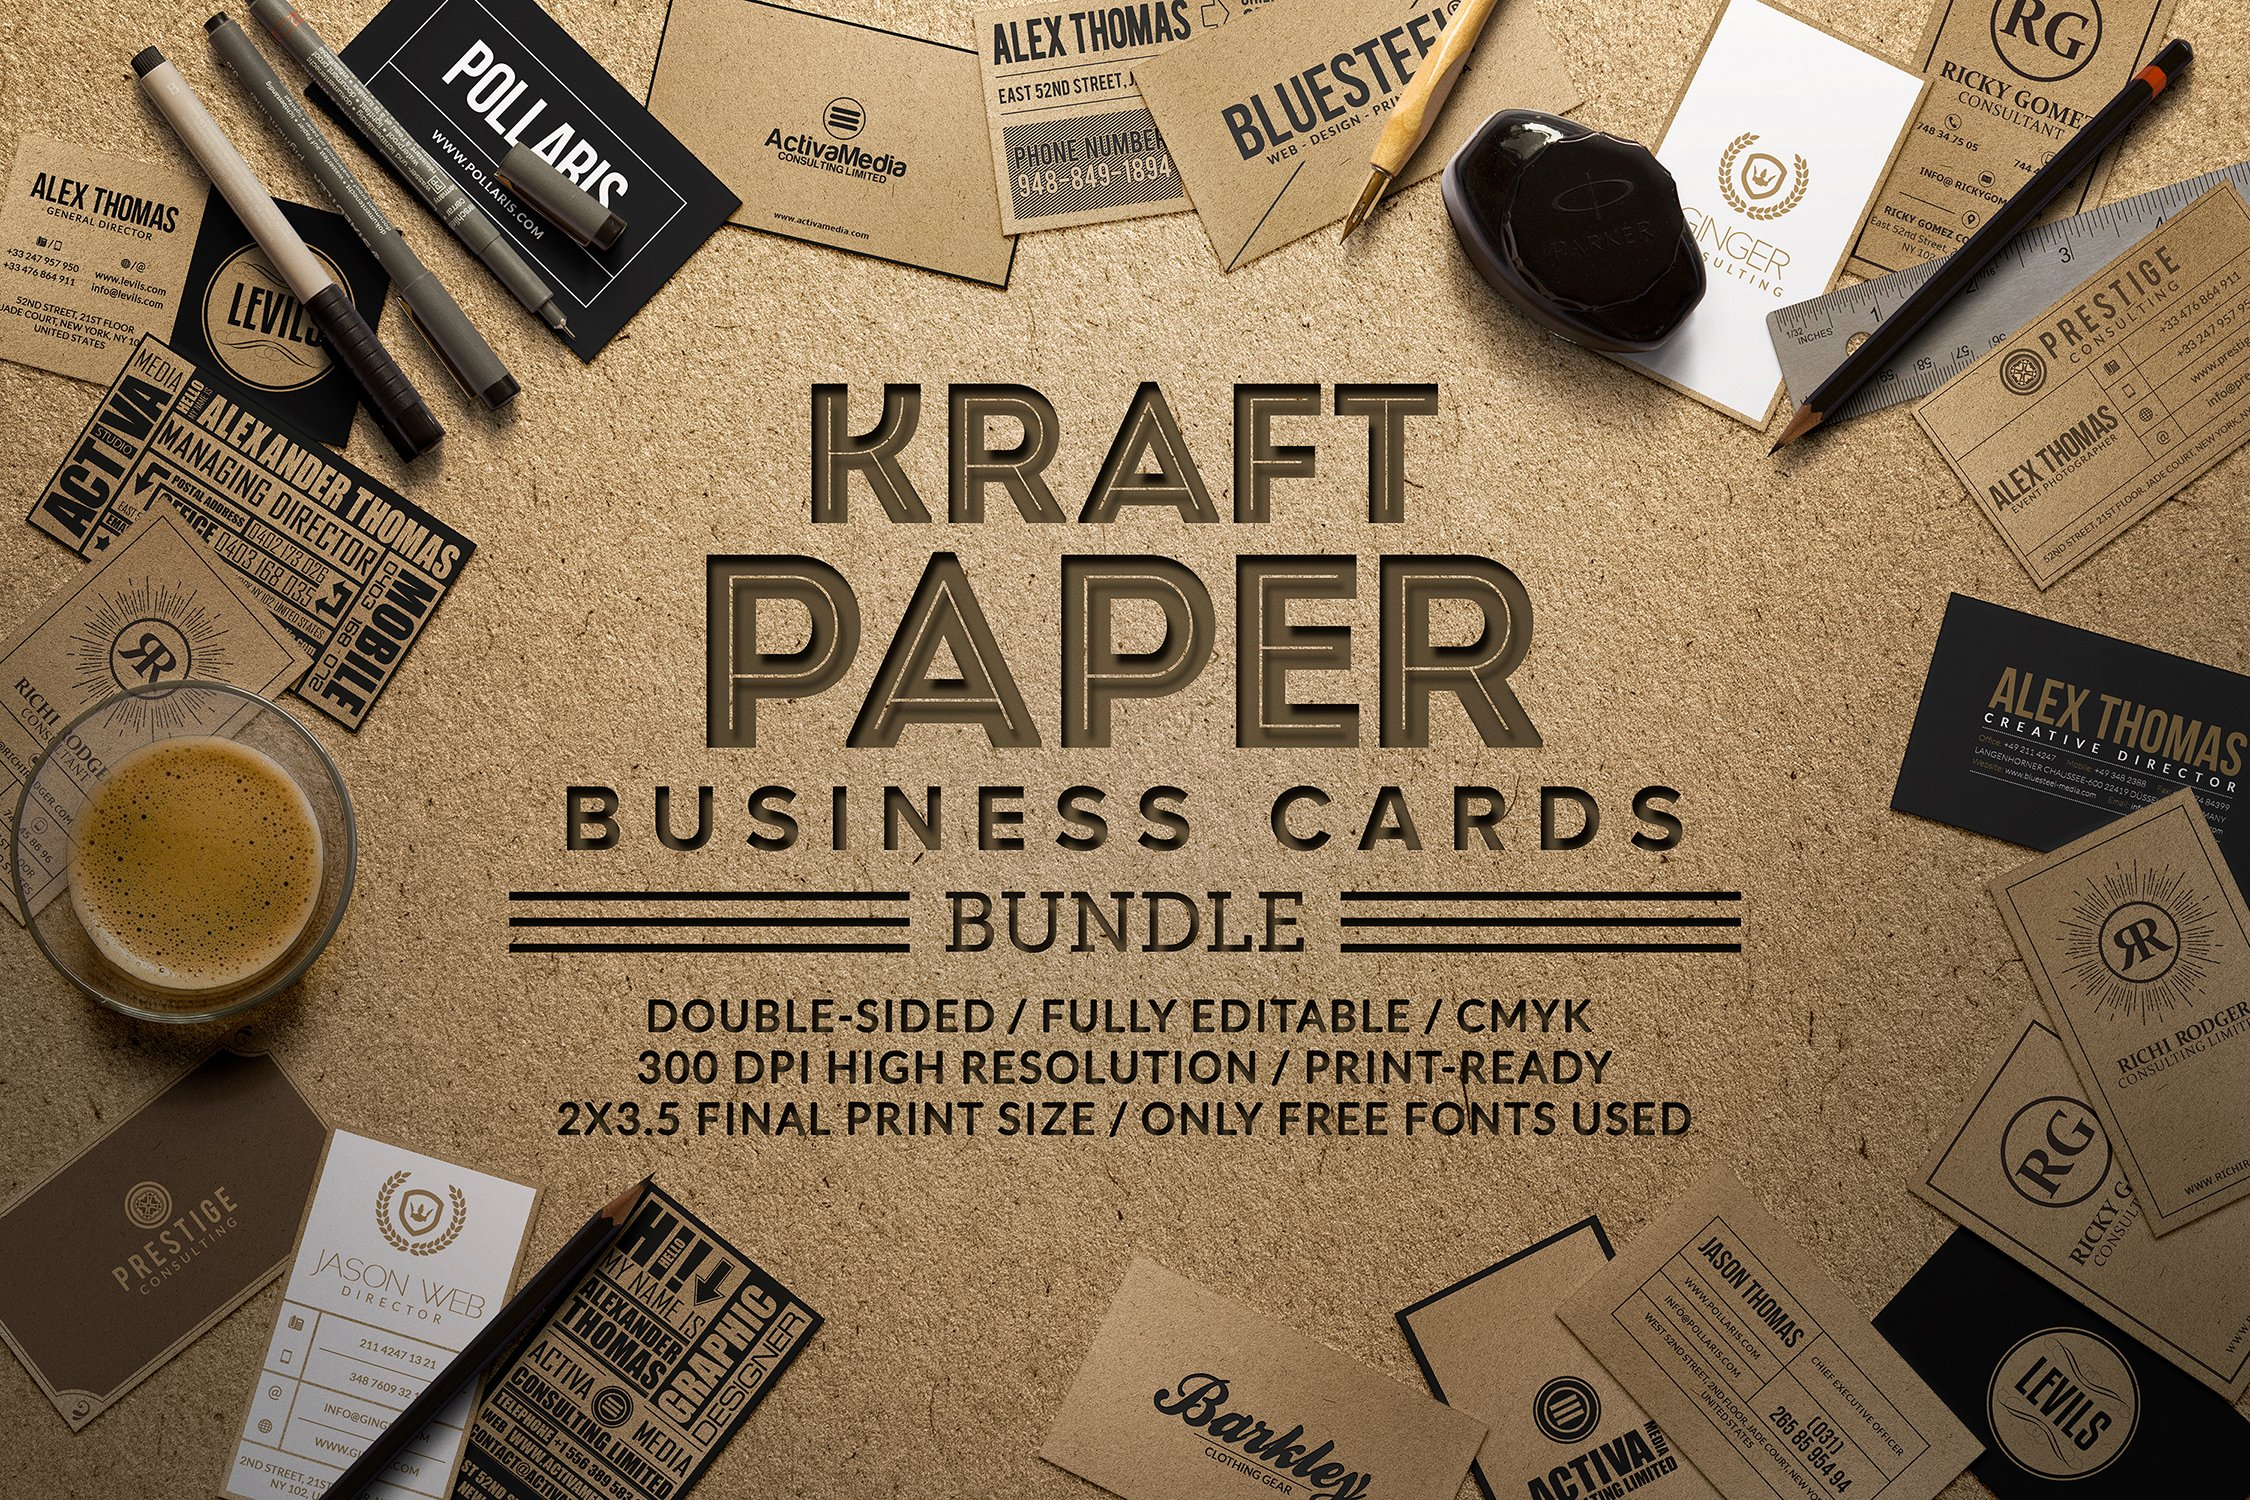 kraft paper business cards bundle business card templates creative market - Business Card Paper